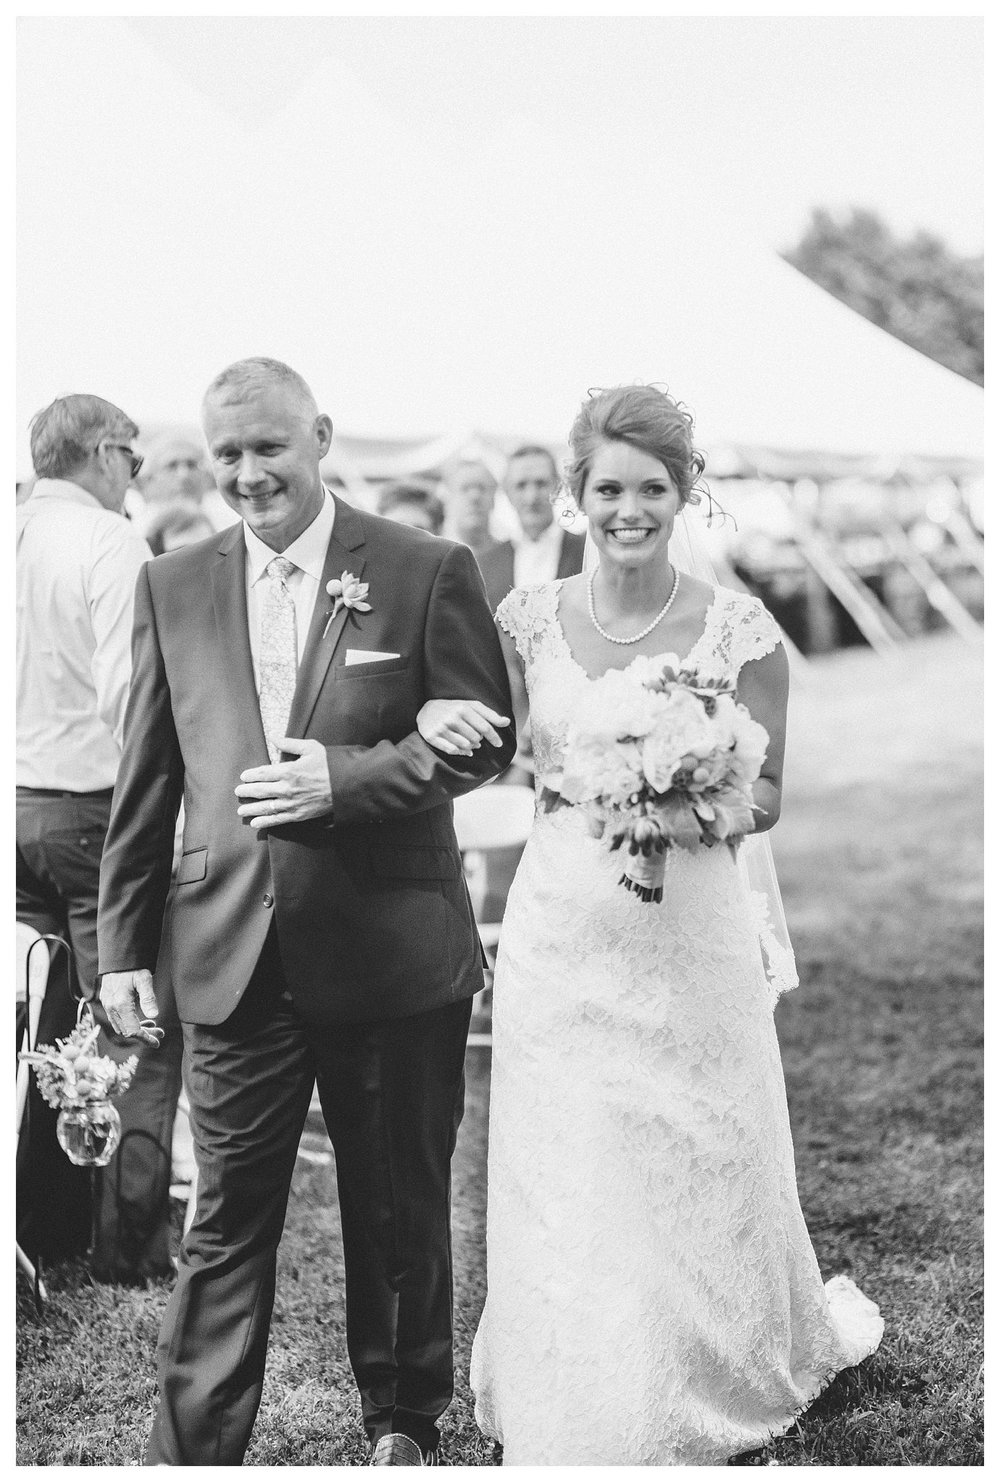 richwood-on-the-river-everleigh-photography-roby-and-tabitha-foree-wedding-42